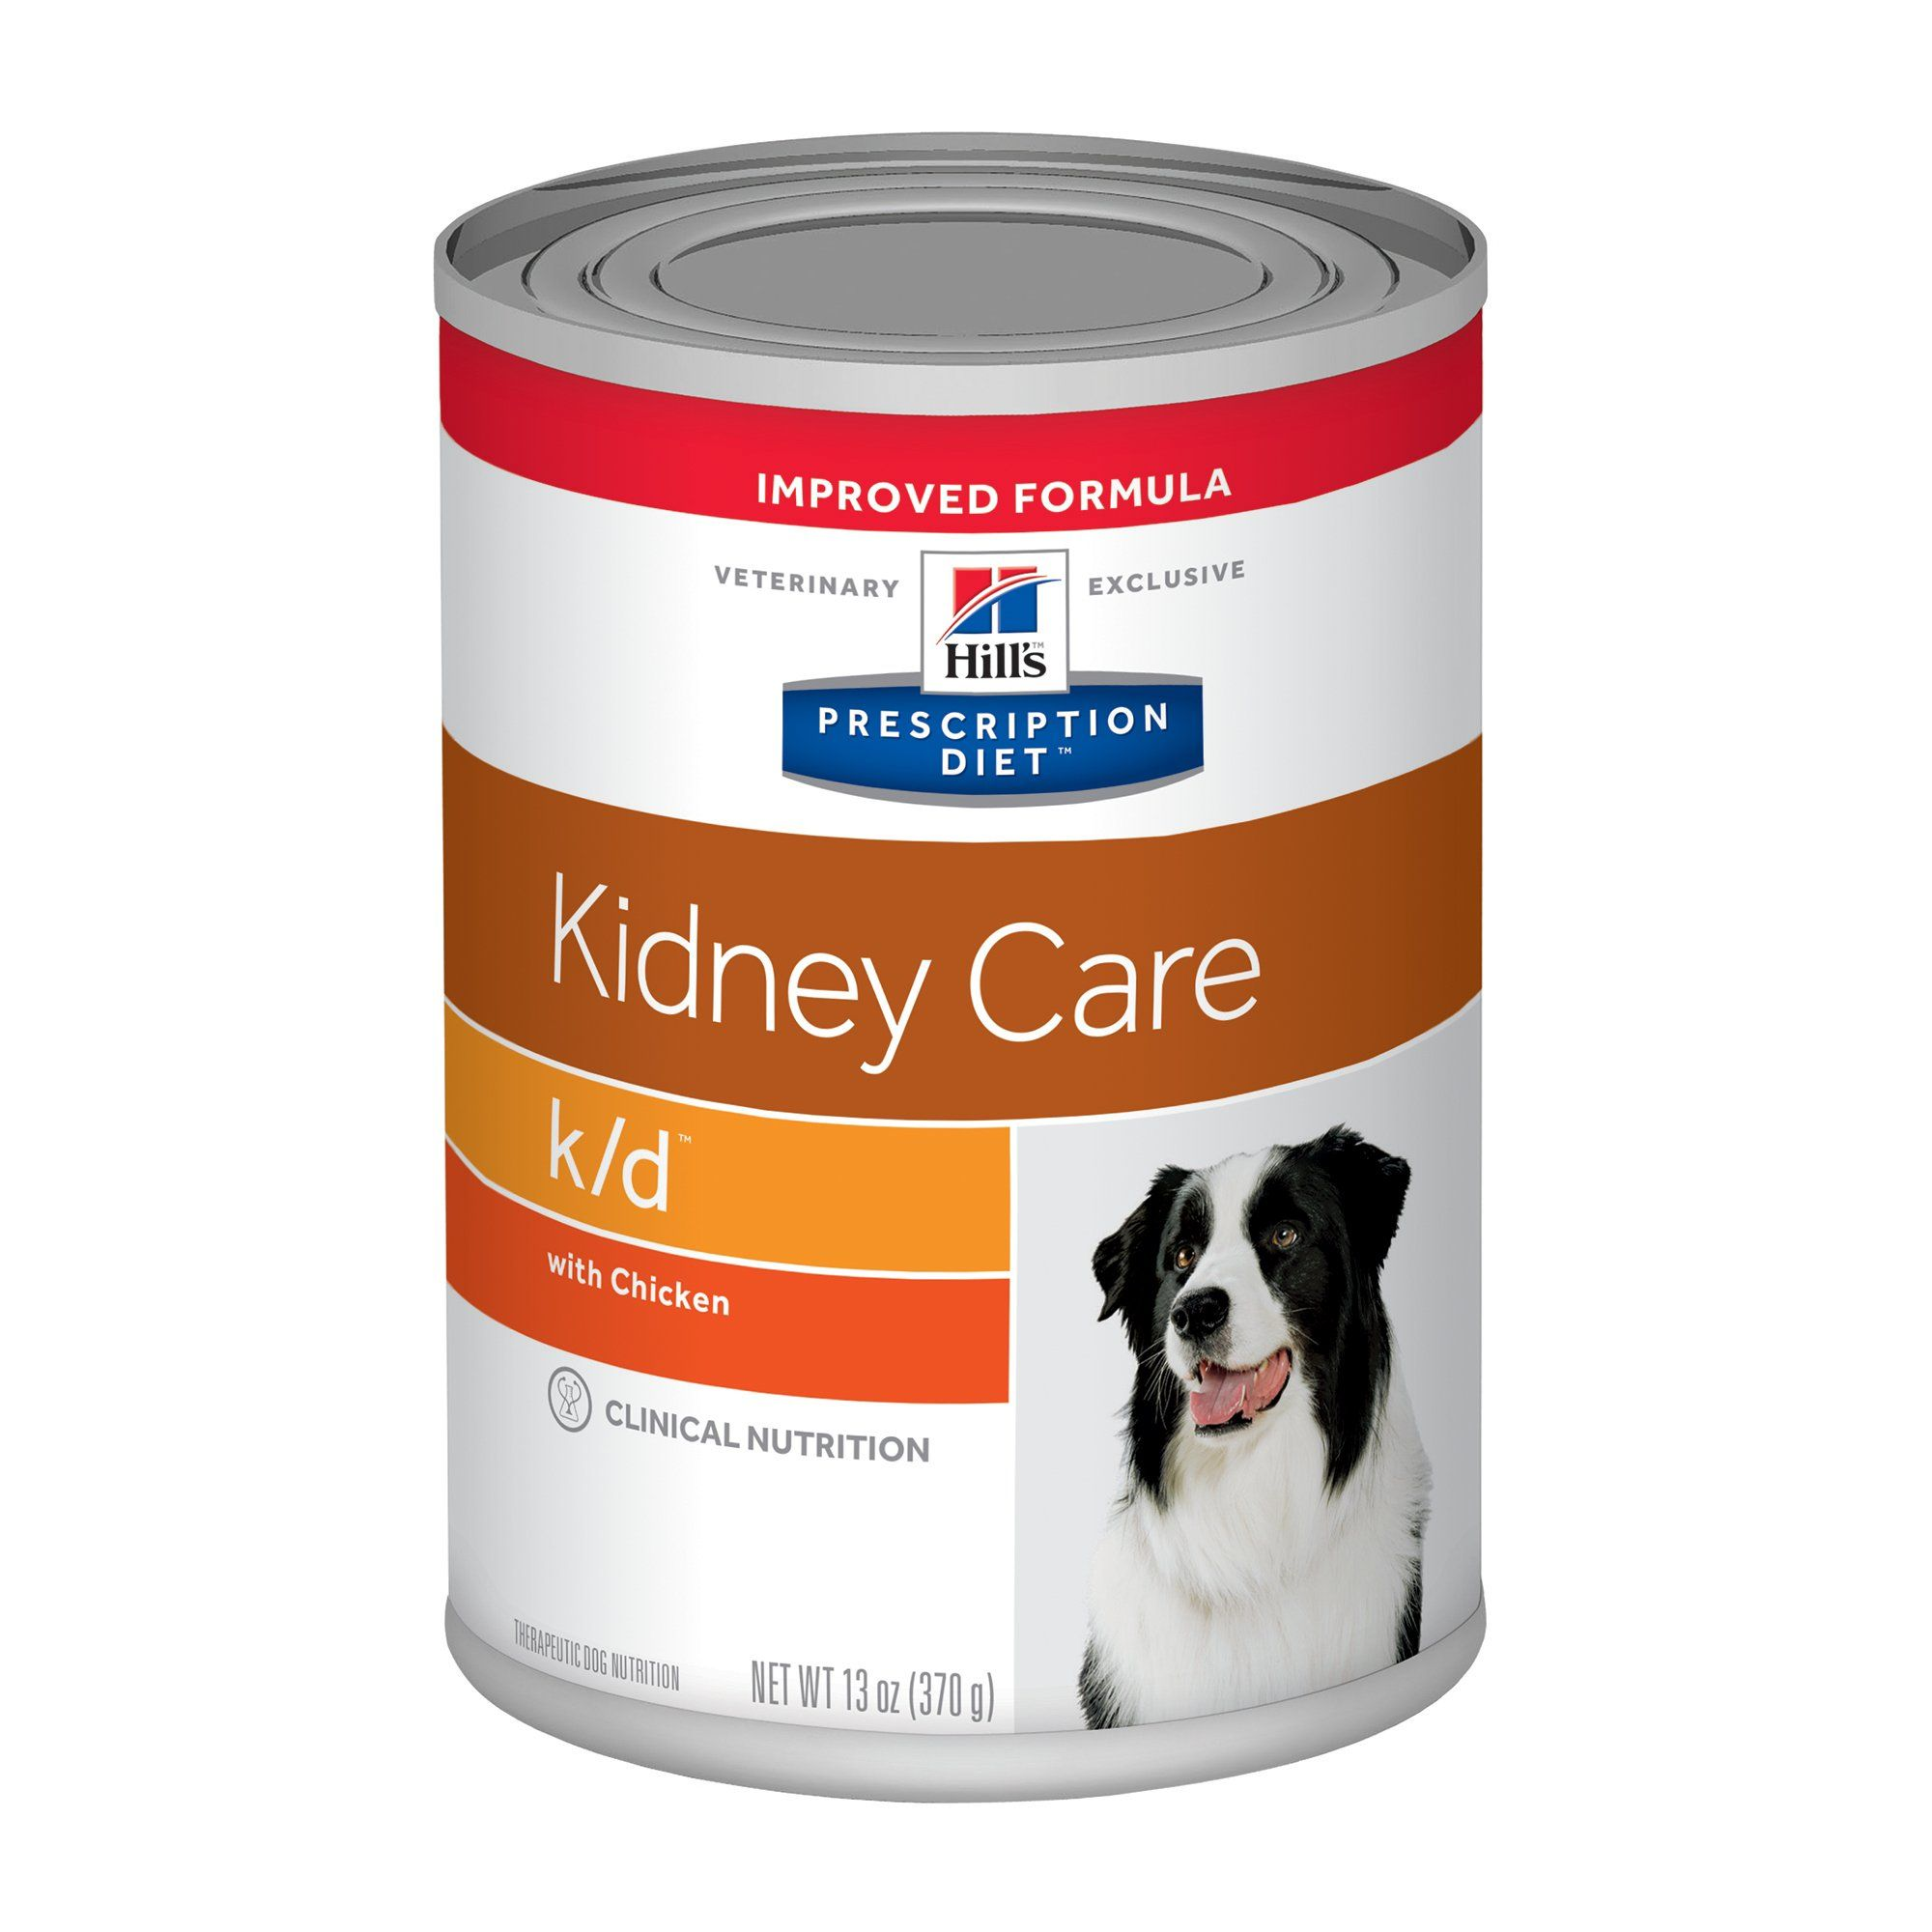 Hill S Prescription Diet K D Kidney Care With Chicken Canned Dog Food 13 Oz Case Of 12 Petco Dog Food Recipes Canned Dog Food Food Animals